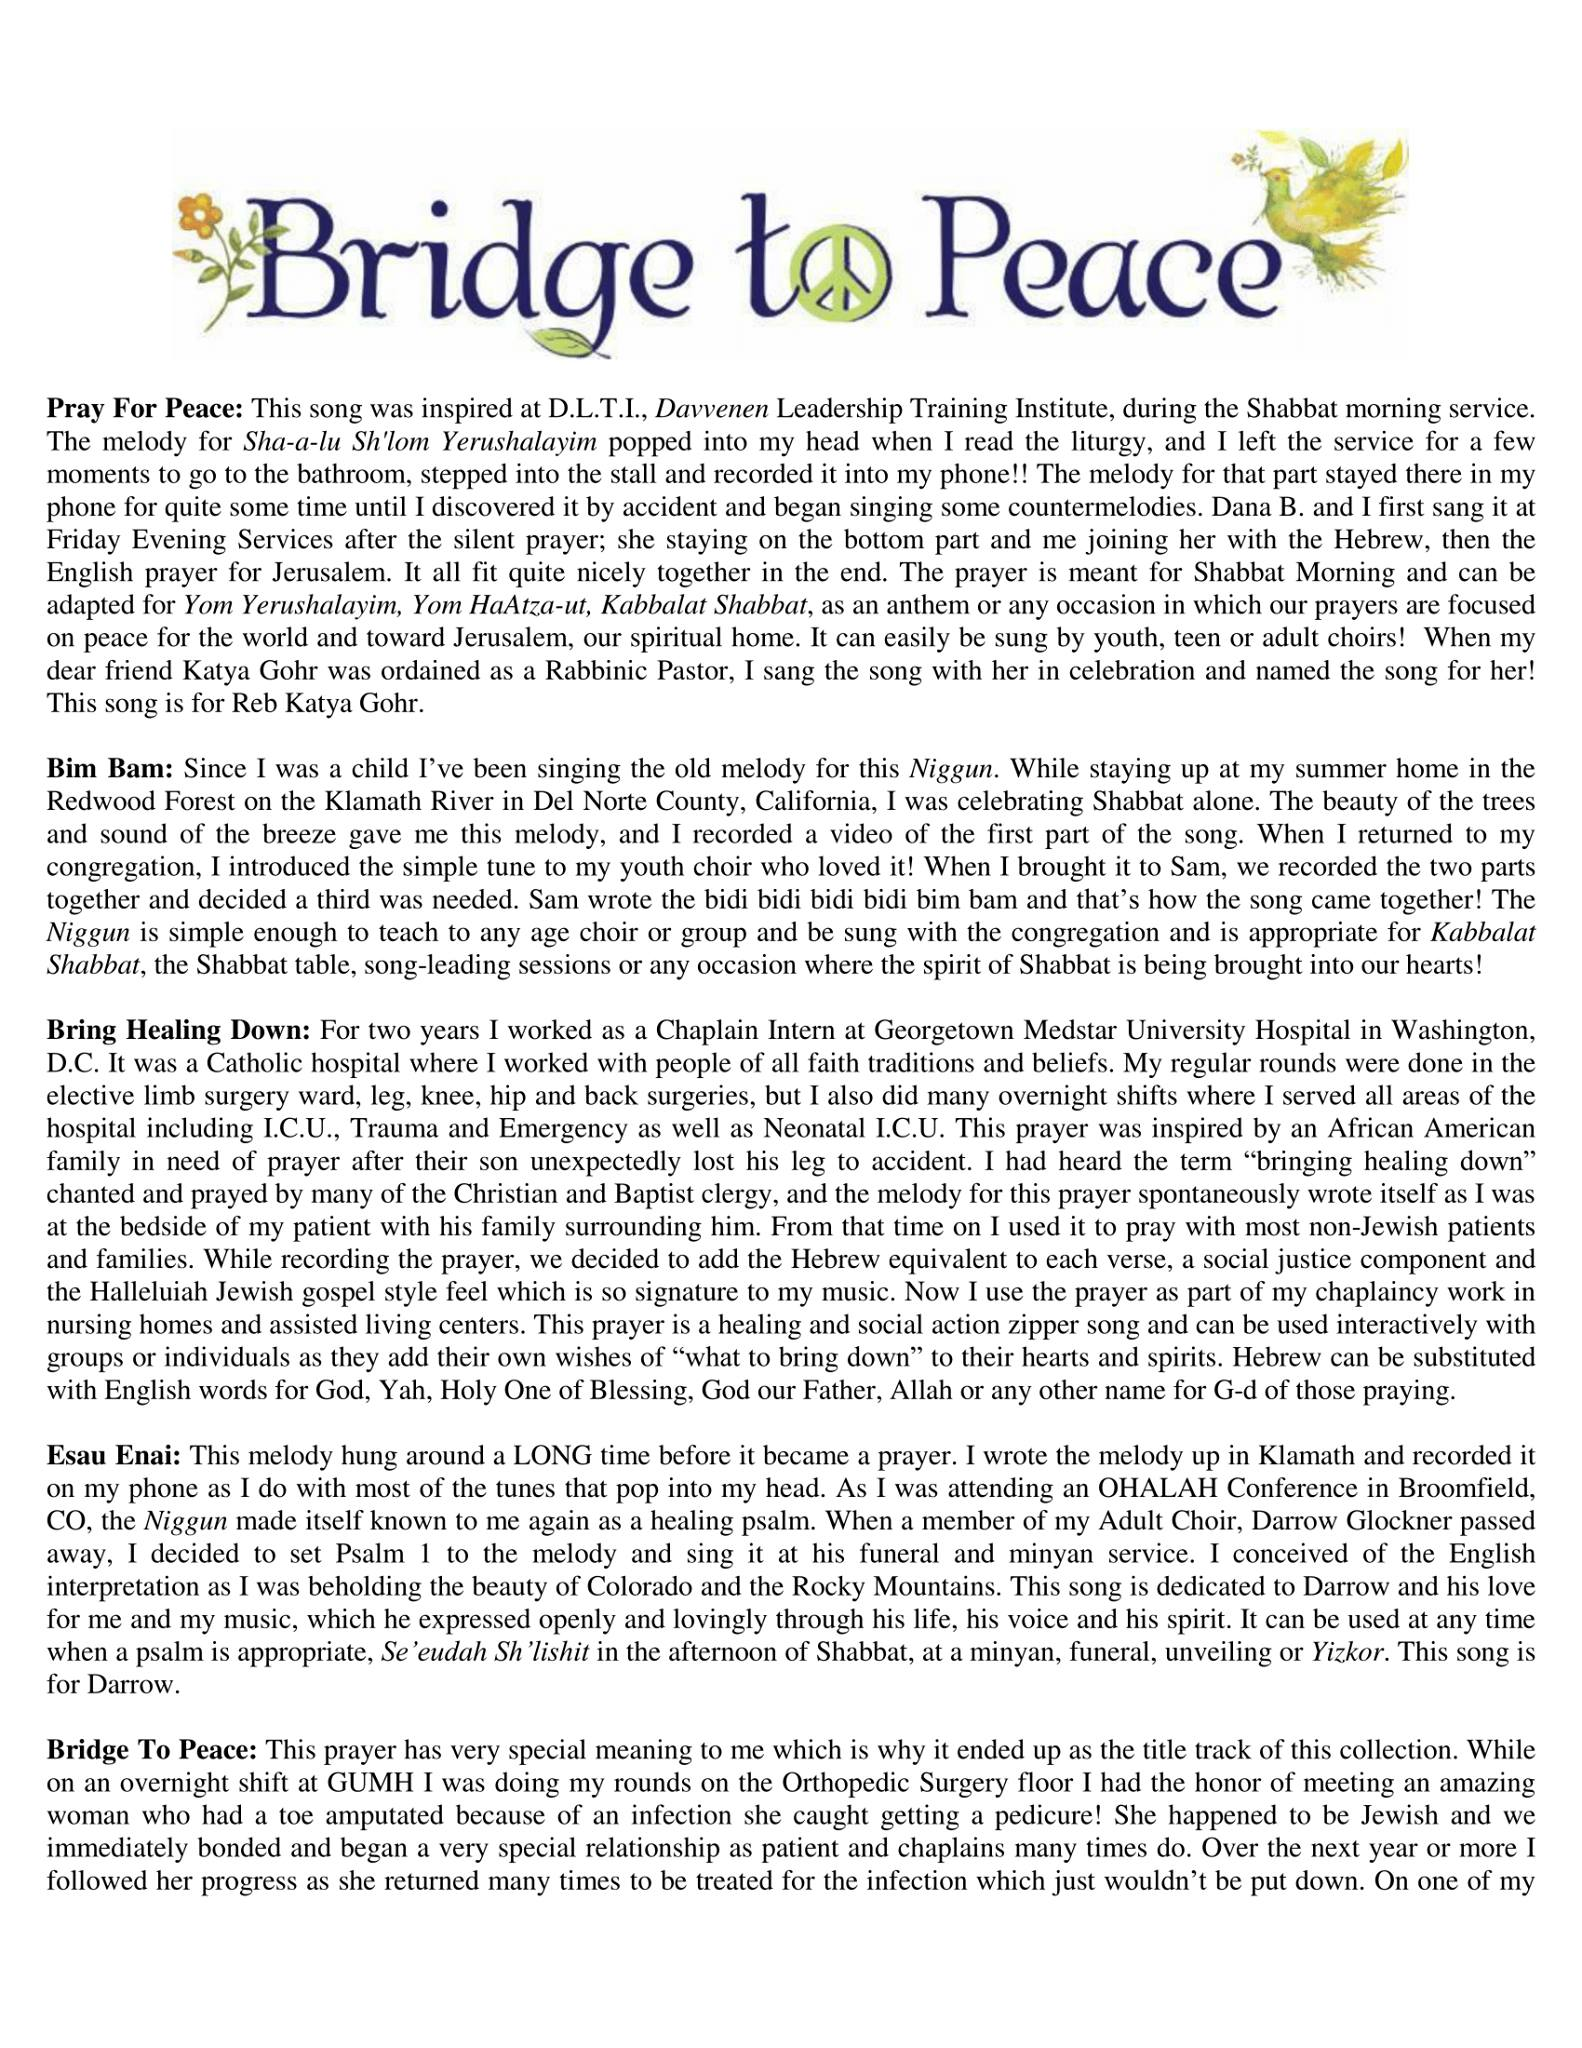 Bridge To Peace CD Release Party Program - Insert page 1